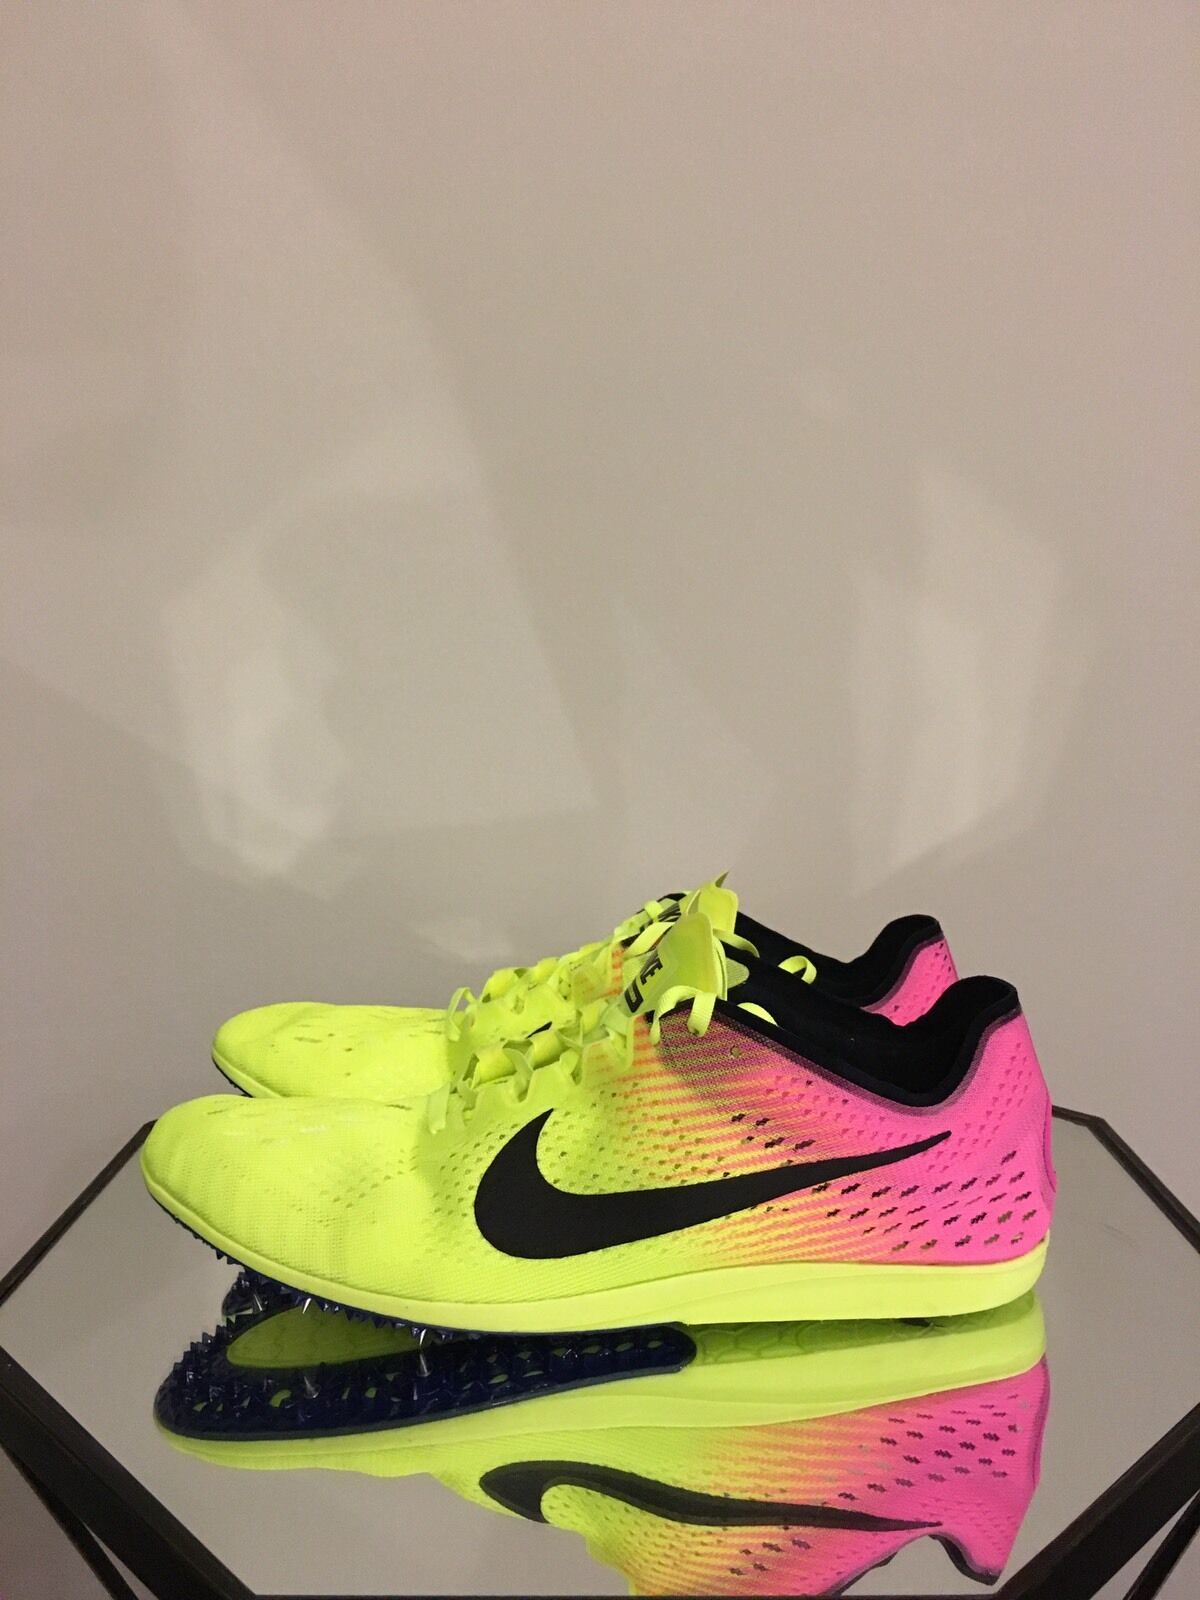 Nike Zoom Matumbo 3 Rio Olympic Track Spikes Volt Pink Men's Sz 13 (835995-999)